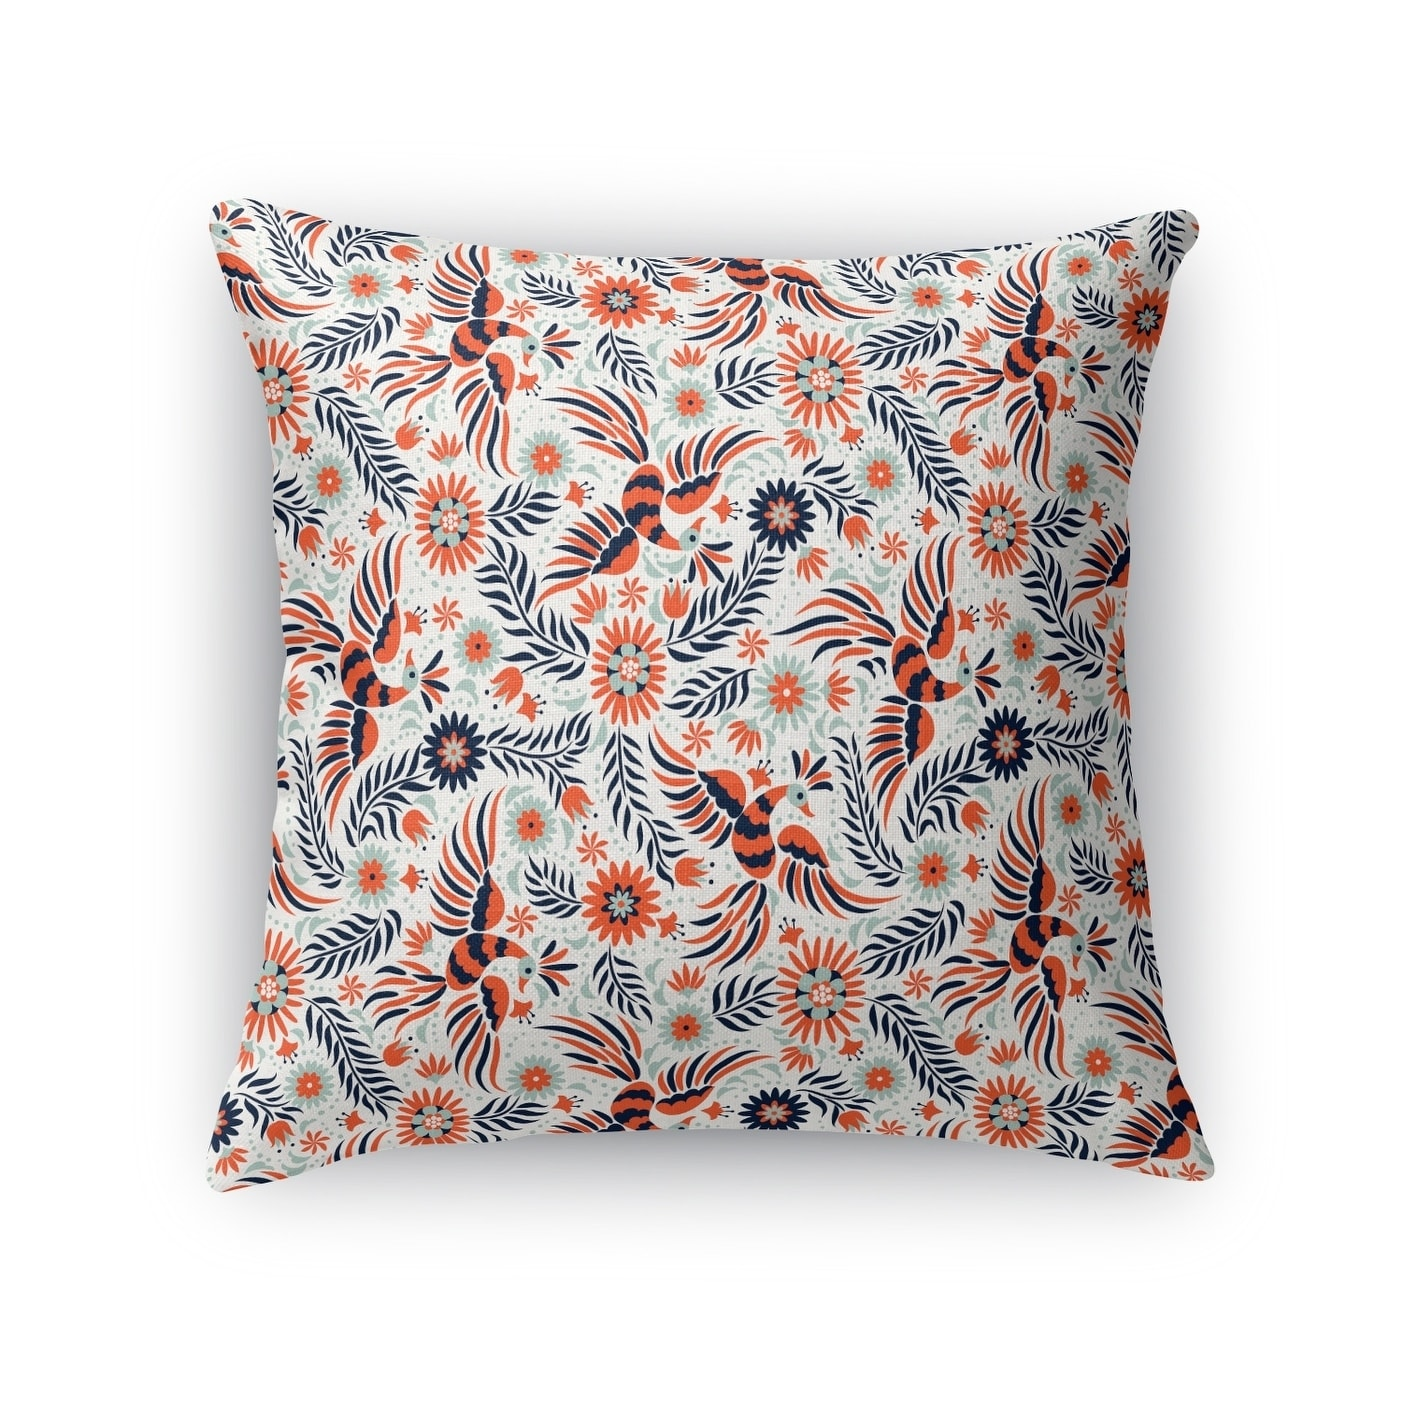 Kavka Designs blue/ peach flock accent pillow by terri ellis with insert (24 x 24)